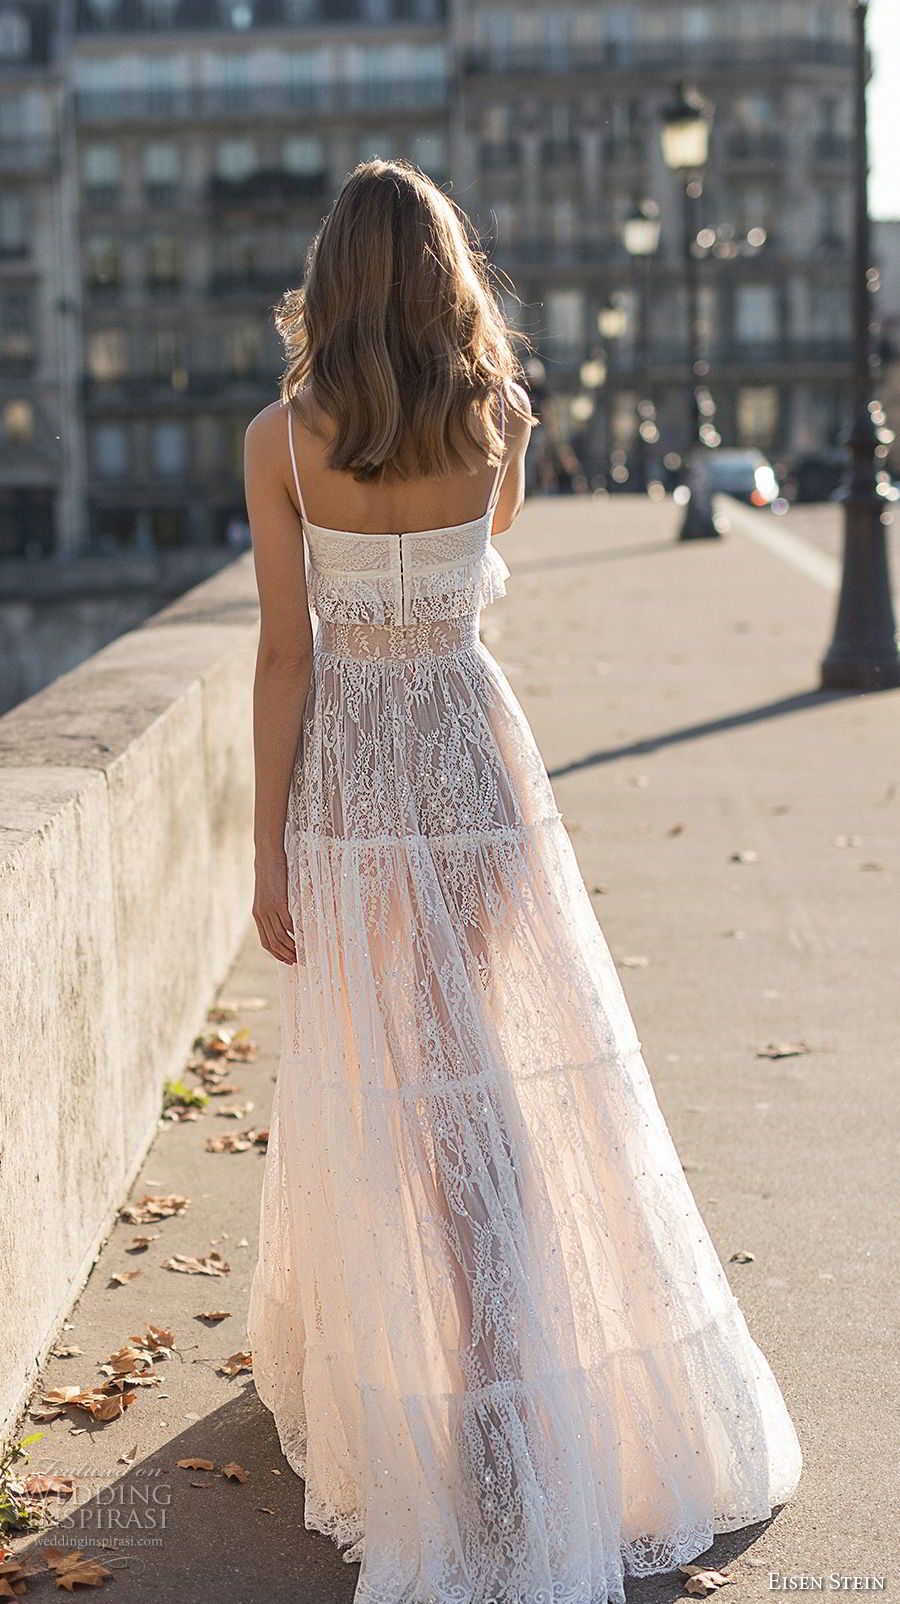 eisen stein 2018 bridal sleeveless spaghetti strap sweetheart neckline crop top full embellishment bohemian soft a  line wedding dress sweep train (13) bv